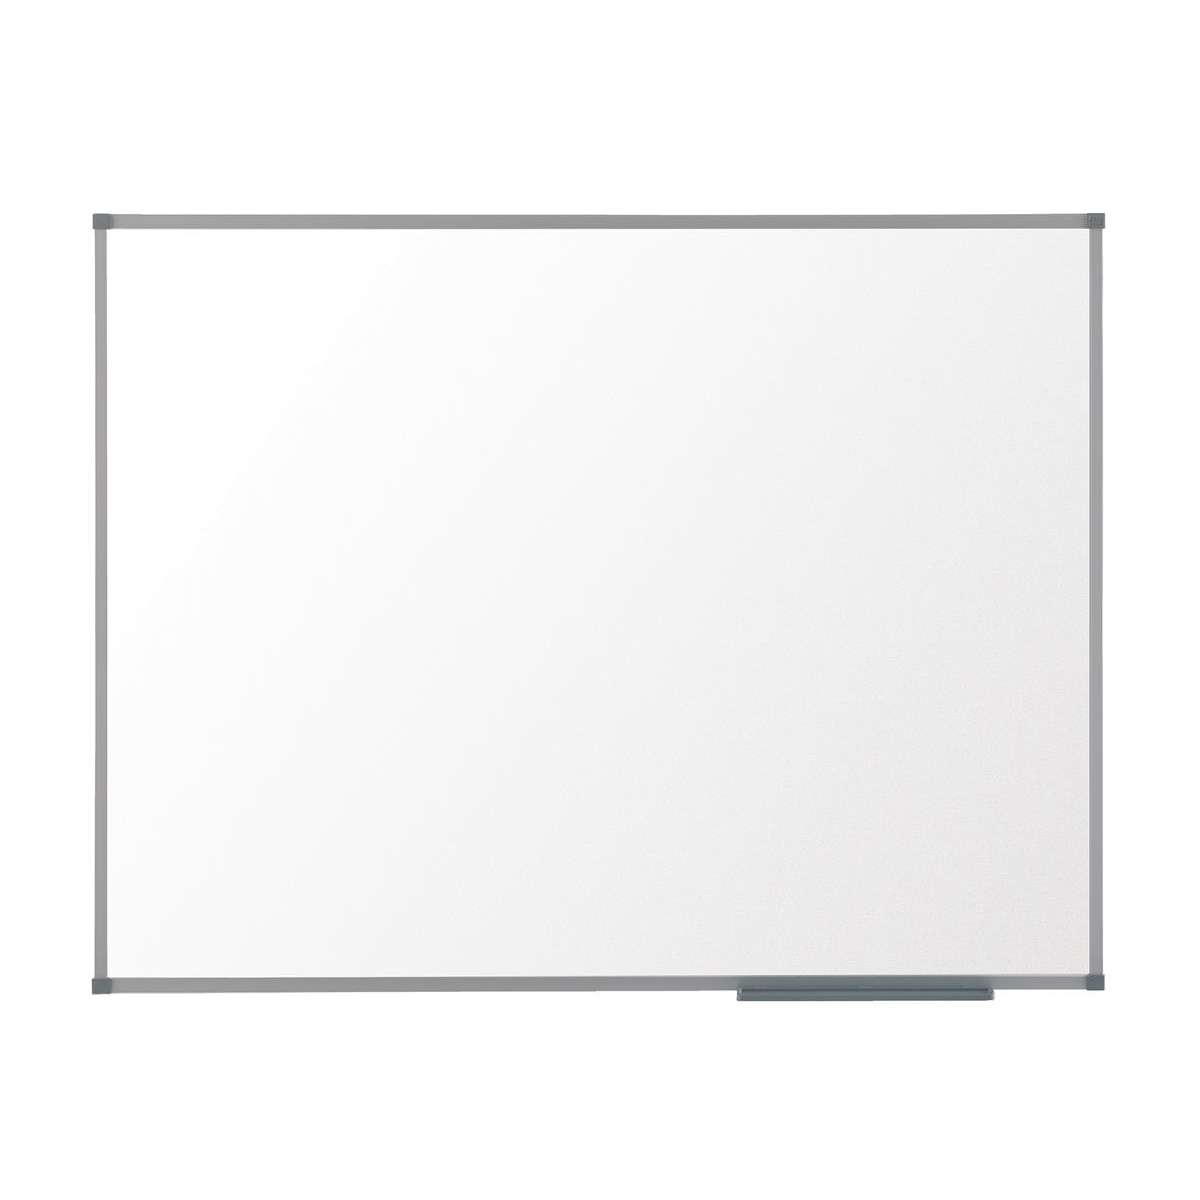 Magnetic Nobo Basic Steel Whiteboard Magnetic Fixings Included W1800xH1200mm White Ref 1905213